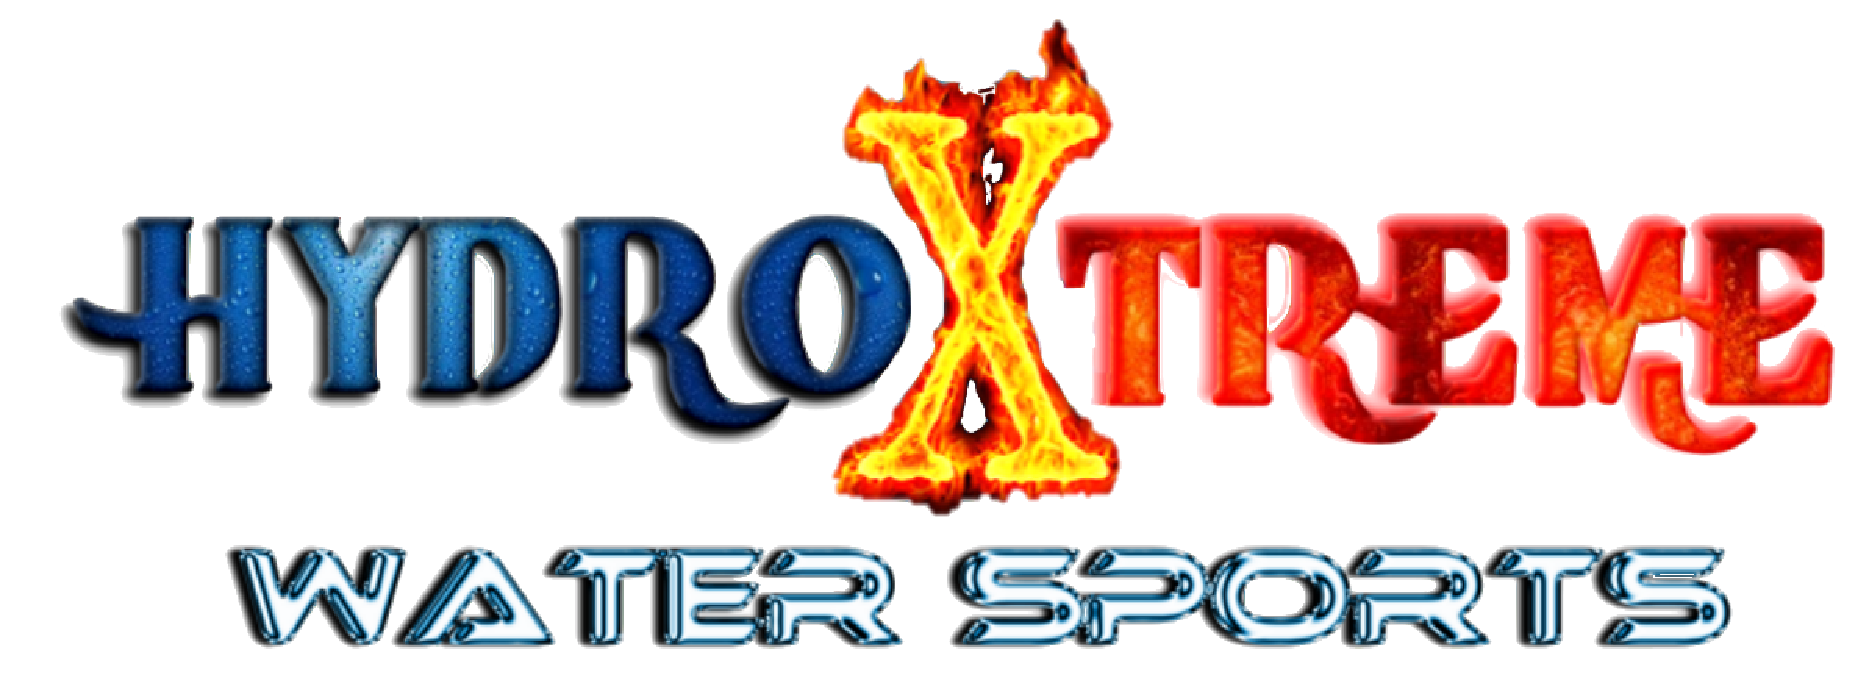 HydroXtreme Watersports Logo